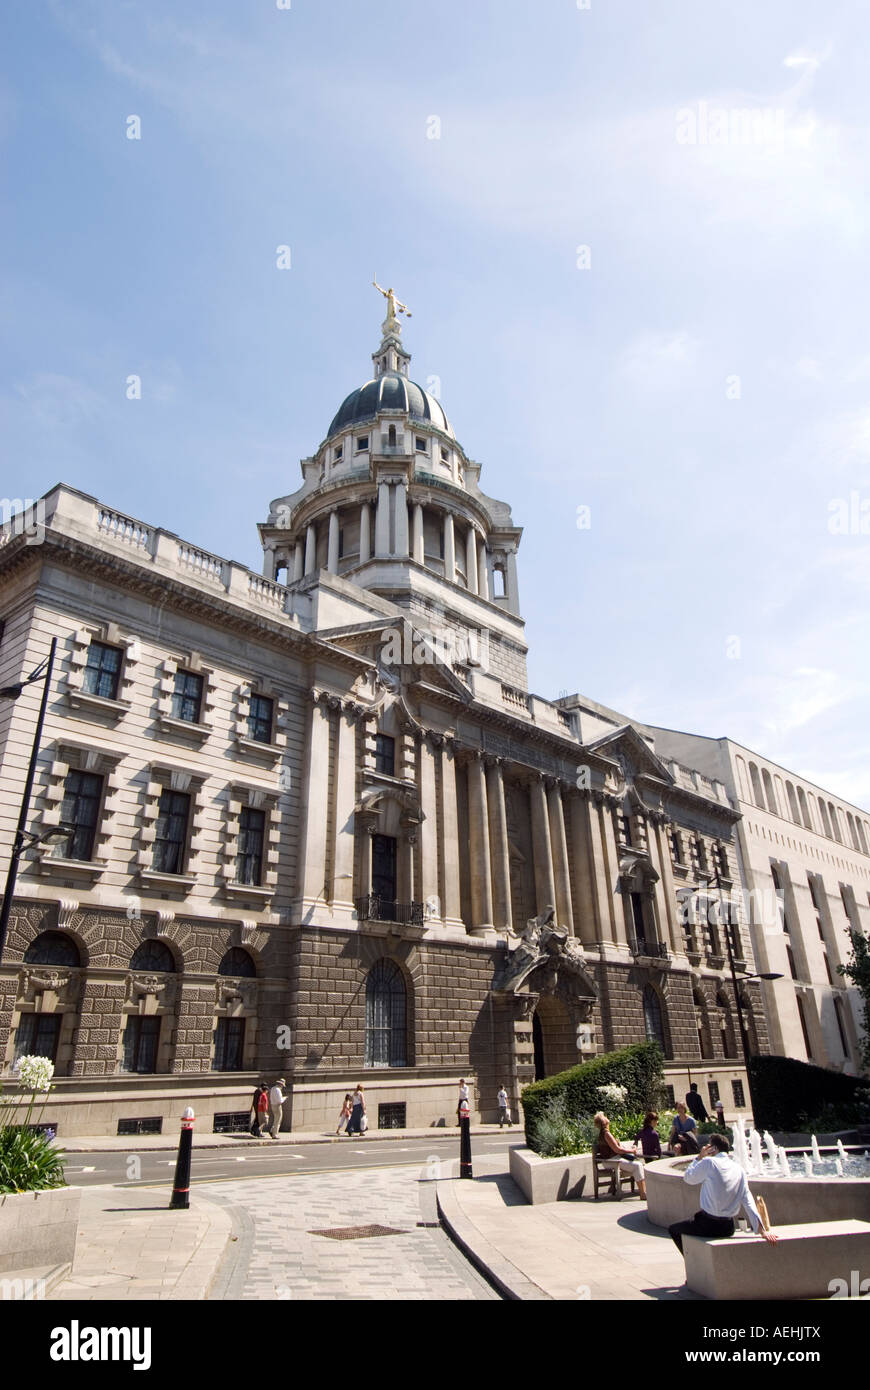 The Old Bailey central criminal court in the City of London UK - Stock Image